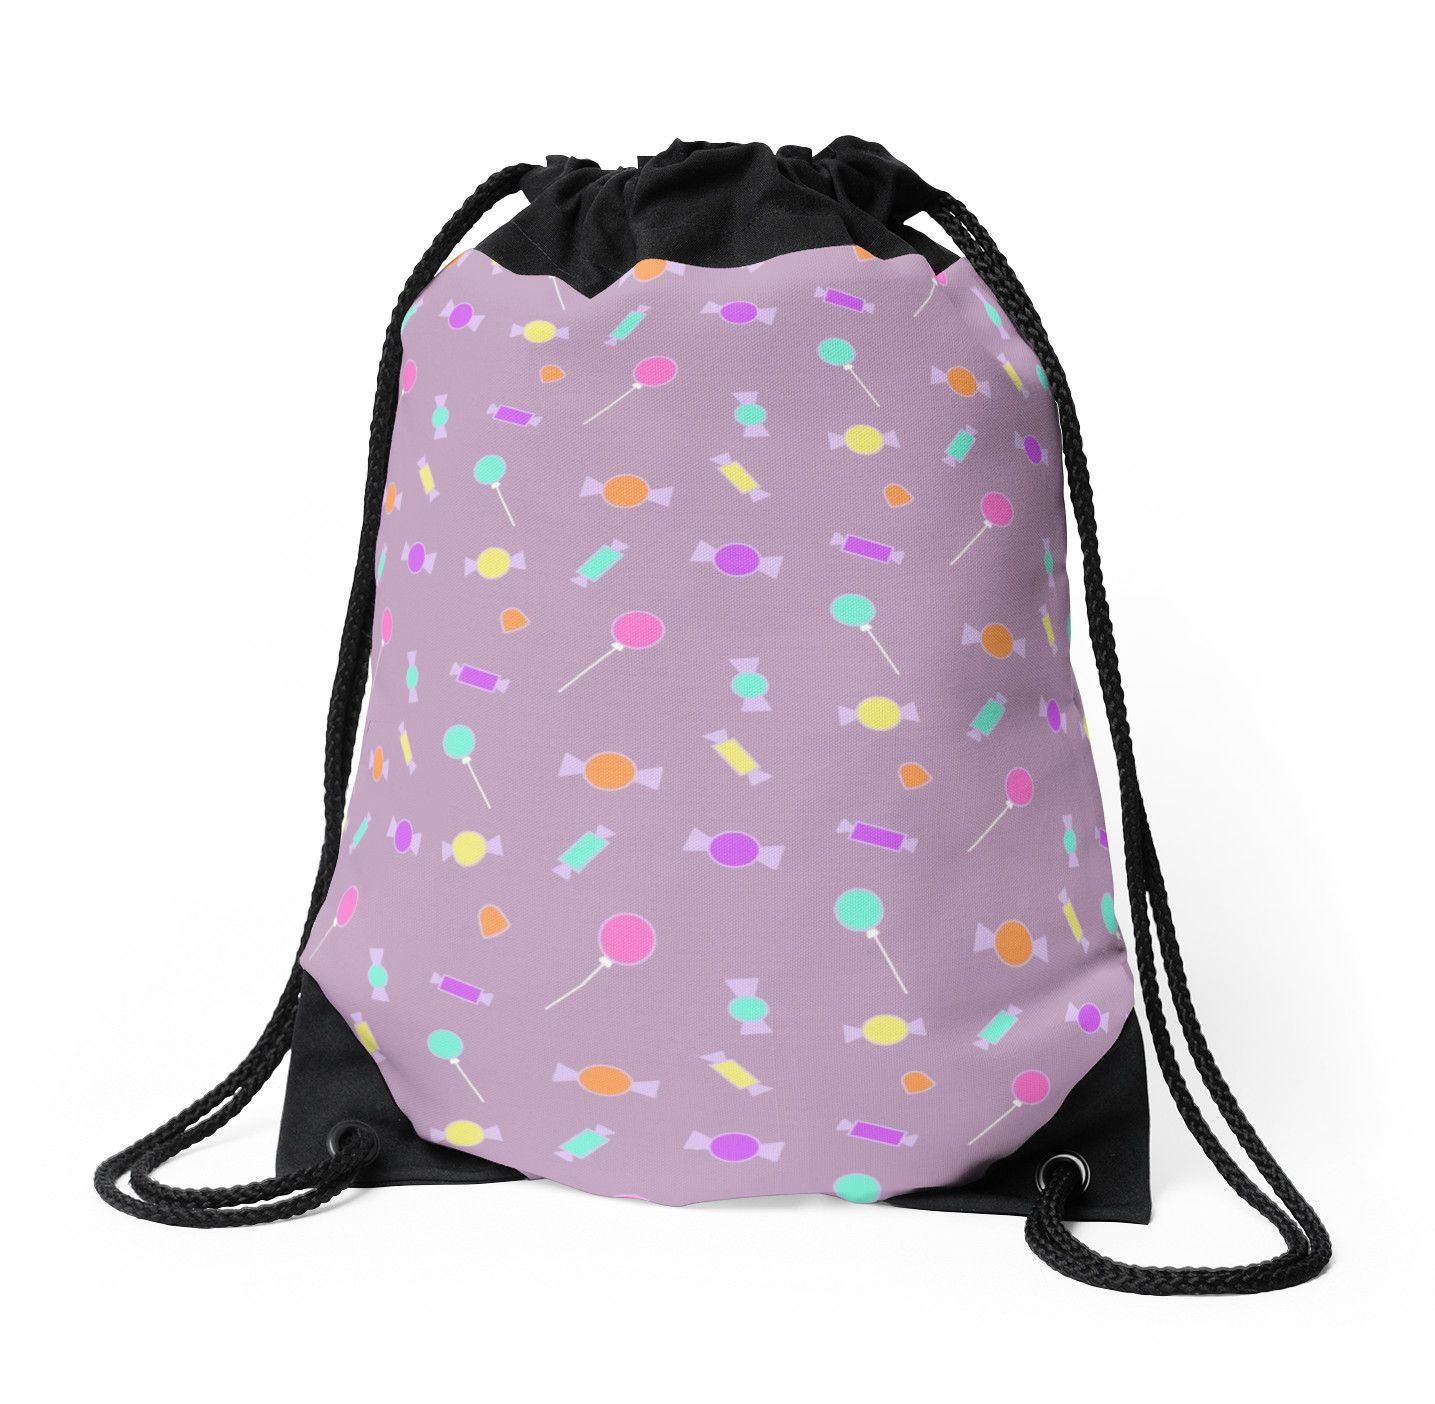 Drawstring Backpack Design